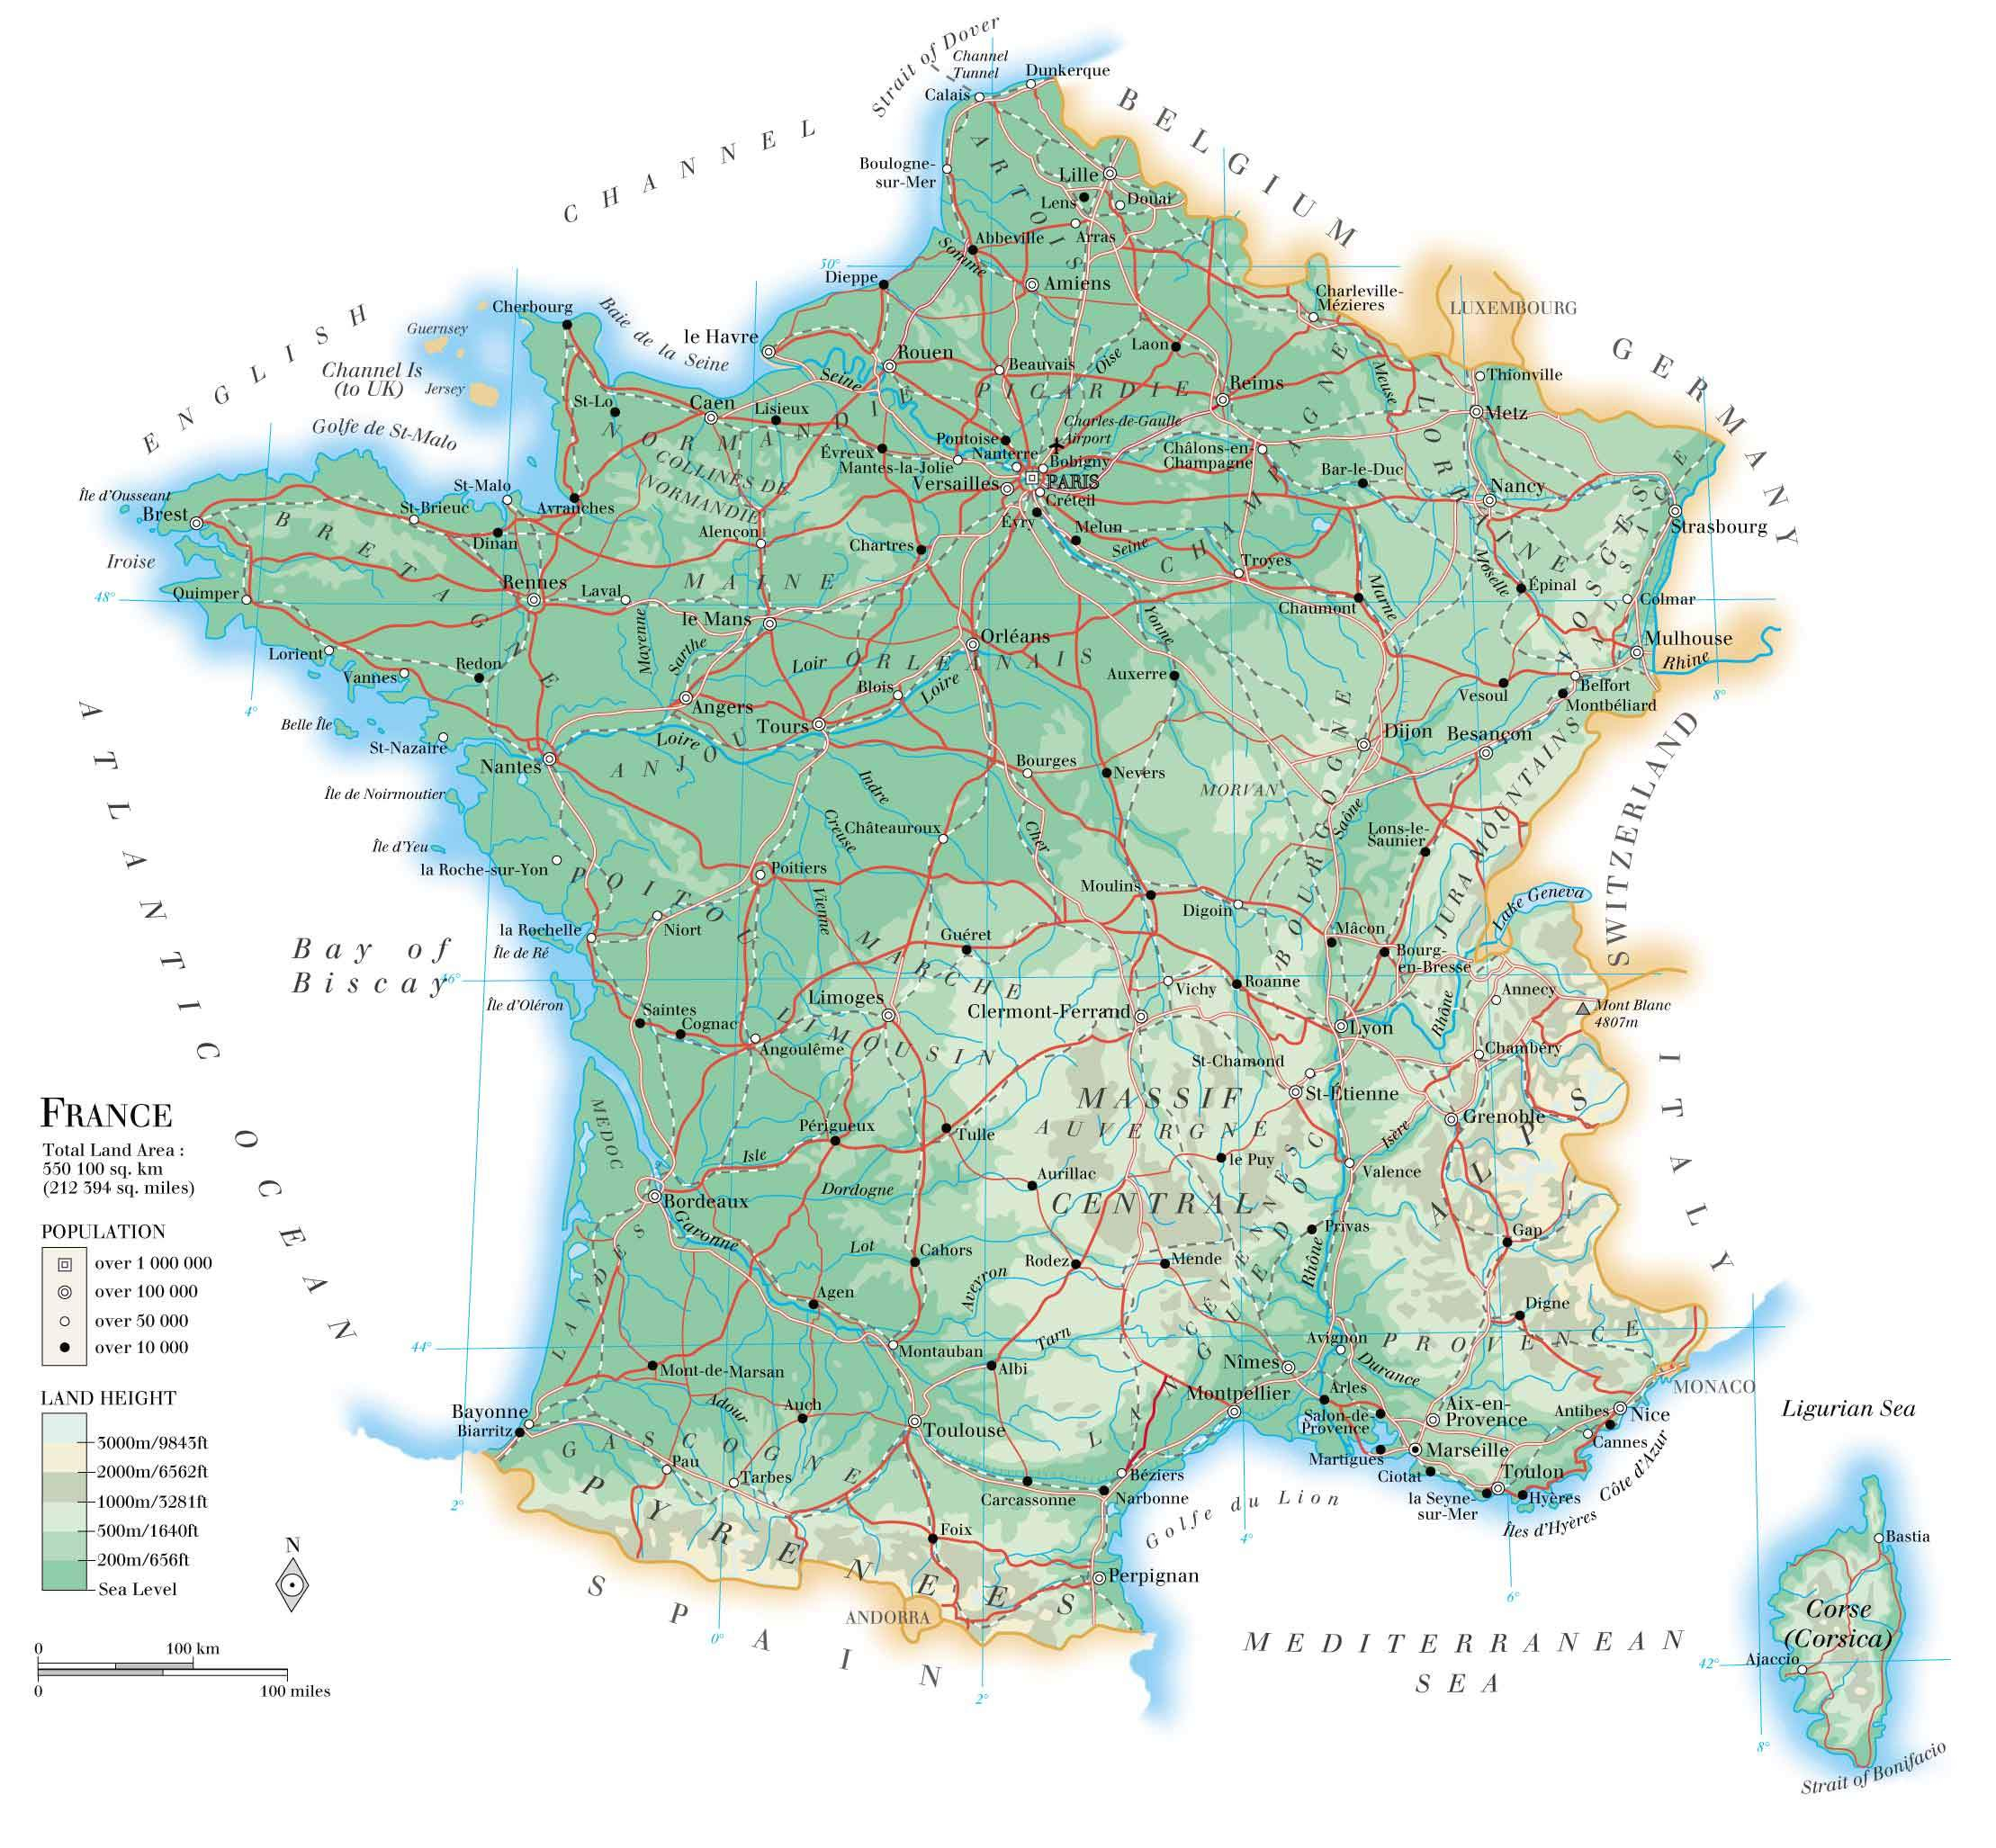 Grande Carte De France A Imprimer | My Blog serapportantà Imprimer Une Carte De France